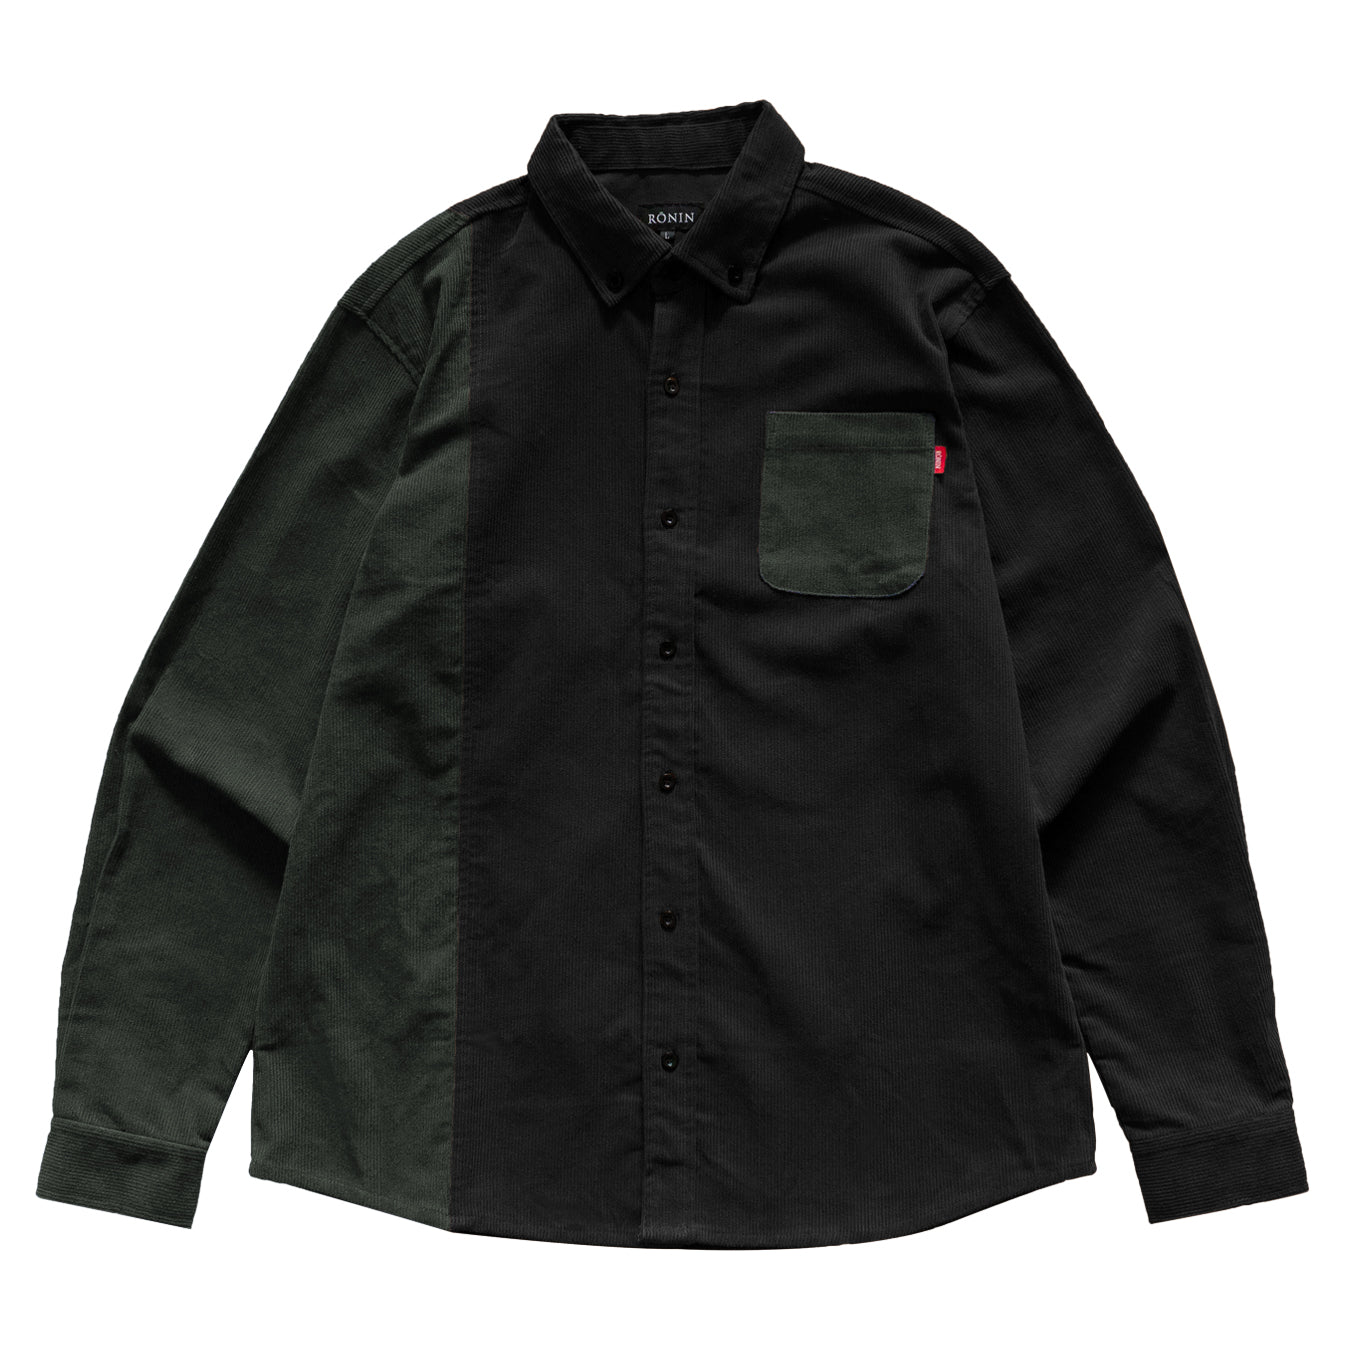 Corduroy Shirt - Muted Olive/Black